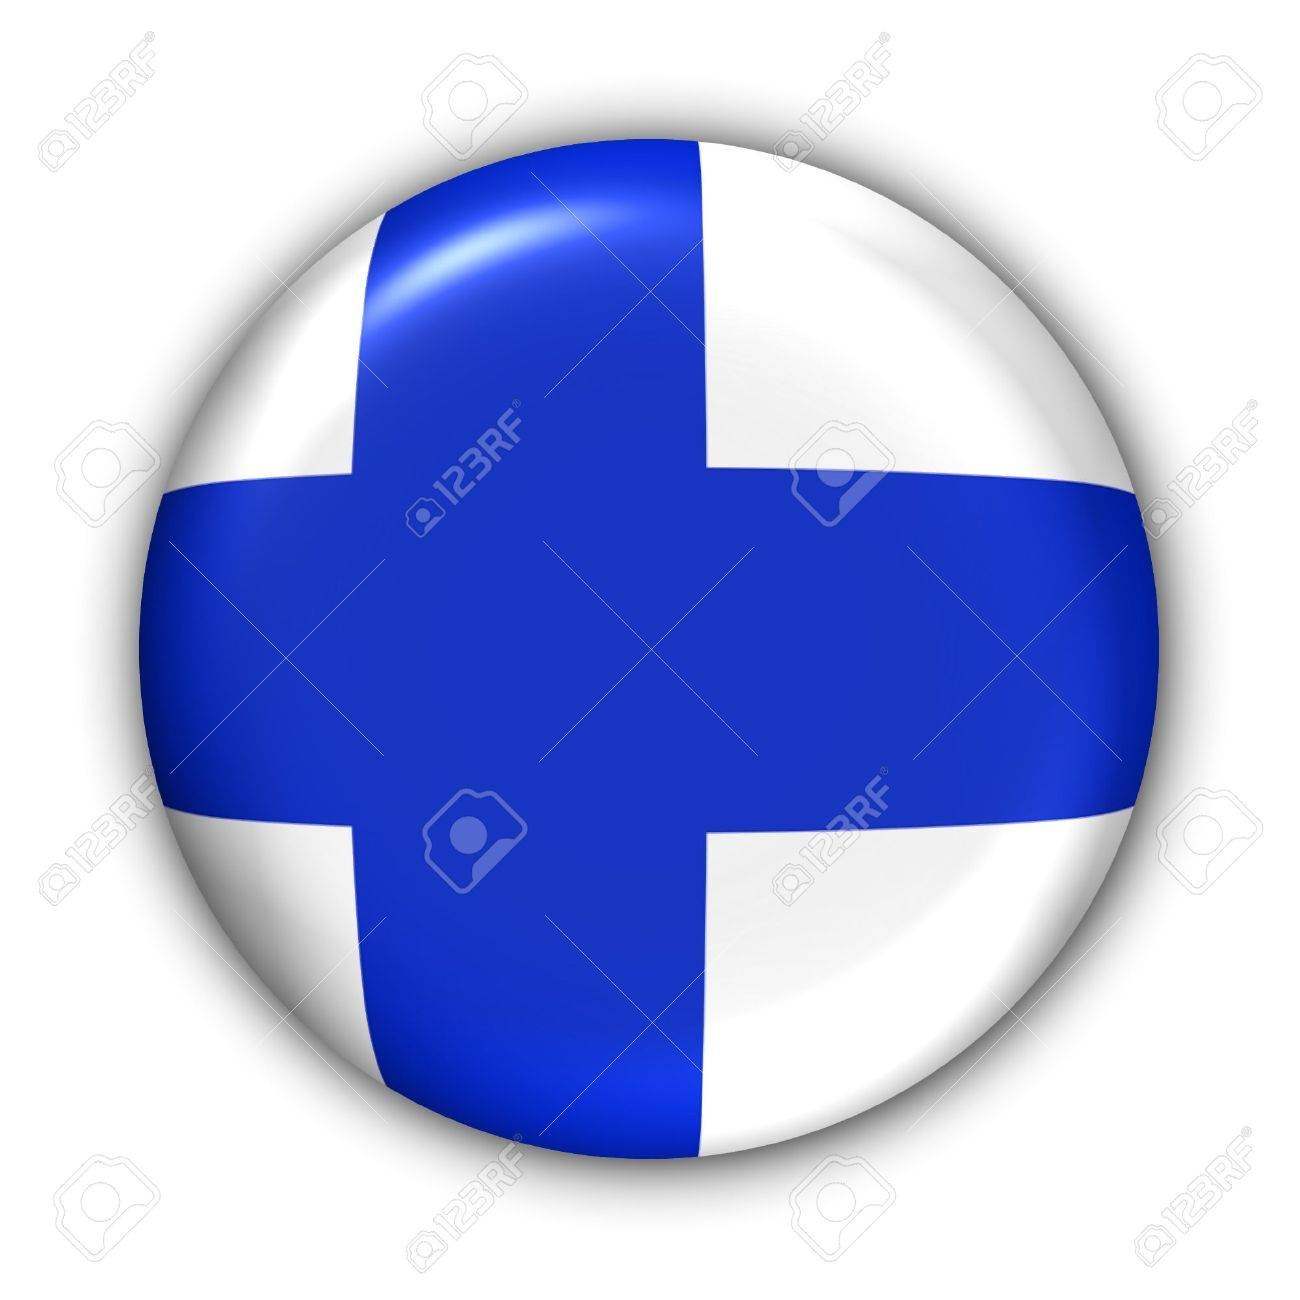 World Flag Button Series - Europe - Finland(With Clipping Path) - 374015